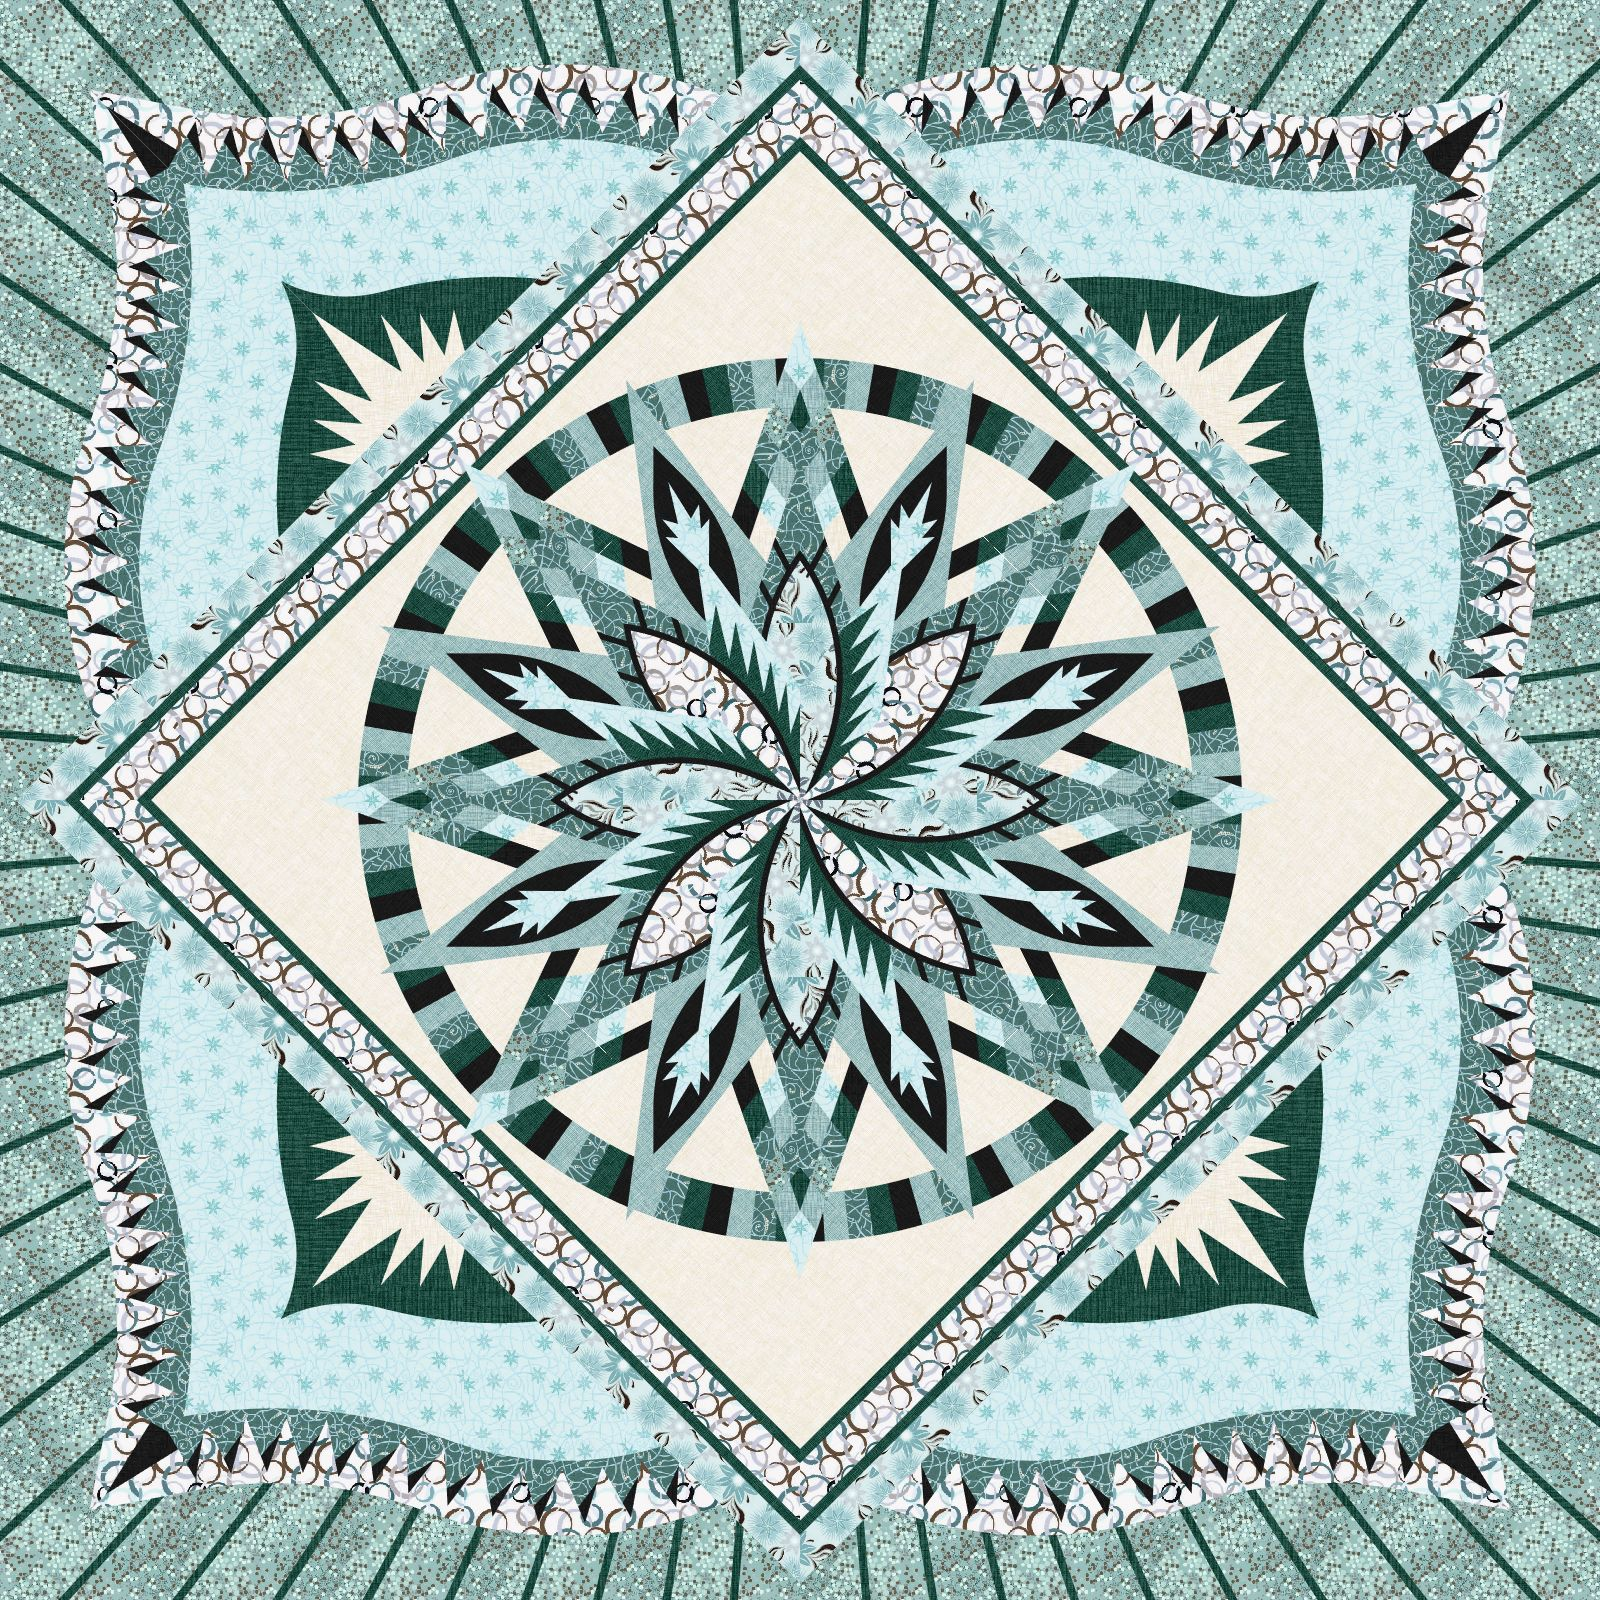 Silver Shores Desert Rose 2 • 99x99 $300.00 Fabric Only $420.00 Kit with Pattern